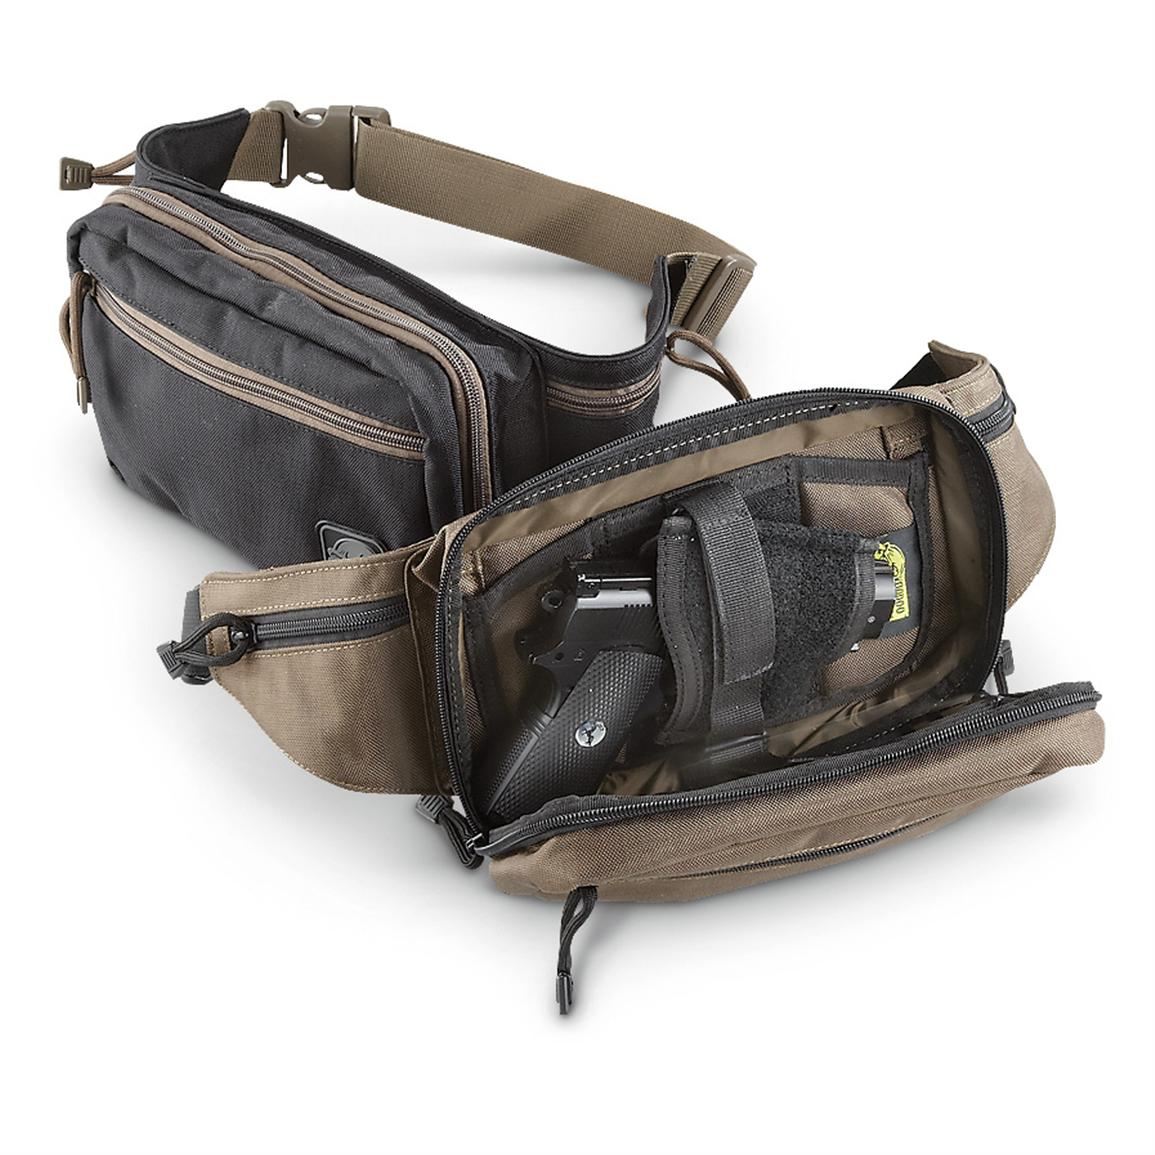 Voodoo Tactical™ Discreet Concealment Fanny Pack, Black or Brown • 175-cu. in. capacity